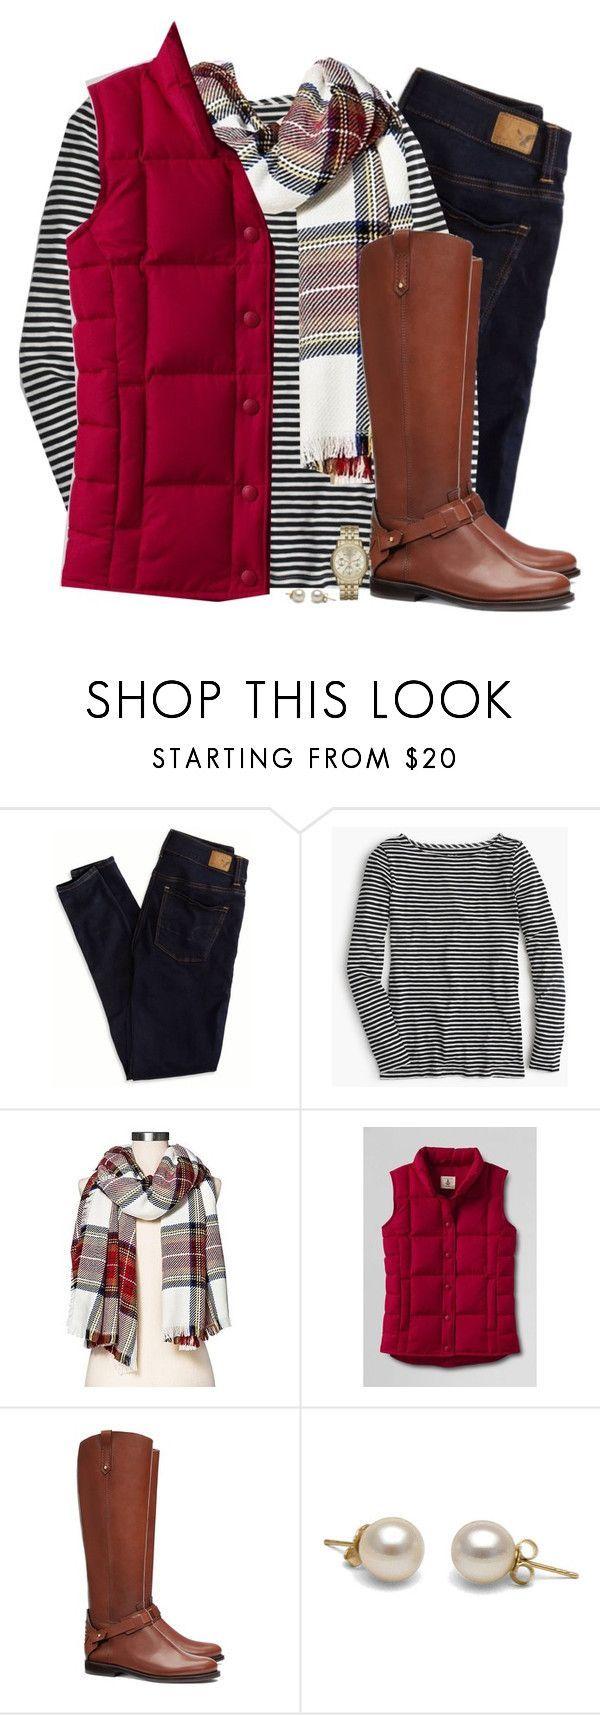 """Red down vest, tartan scarf & striped top"" by steffiestaffie ❤️ liked on Polyvore featuring American Eagle Outfitters, J.Crew, Merona, Lands' End, Tory Burch and Michael Kors"